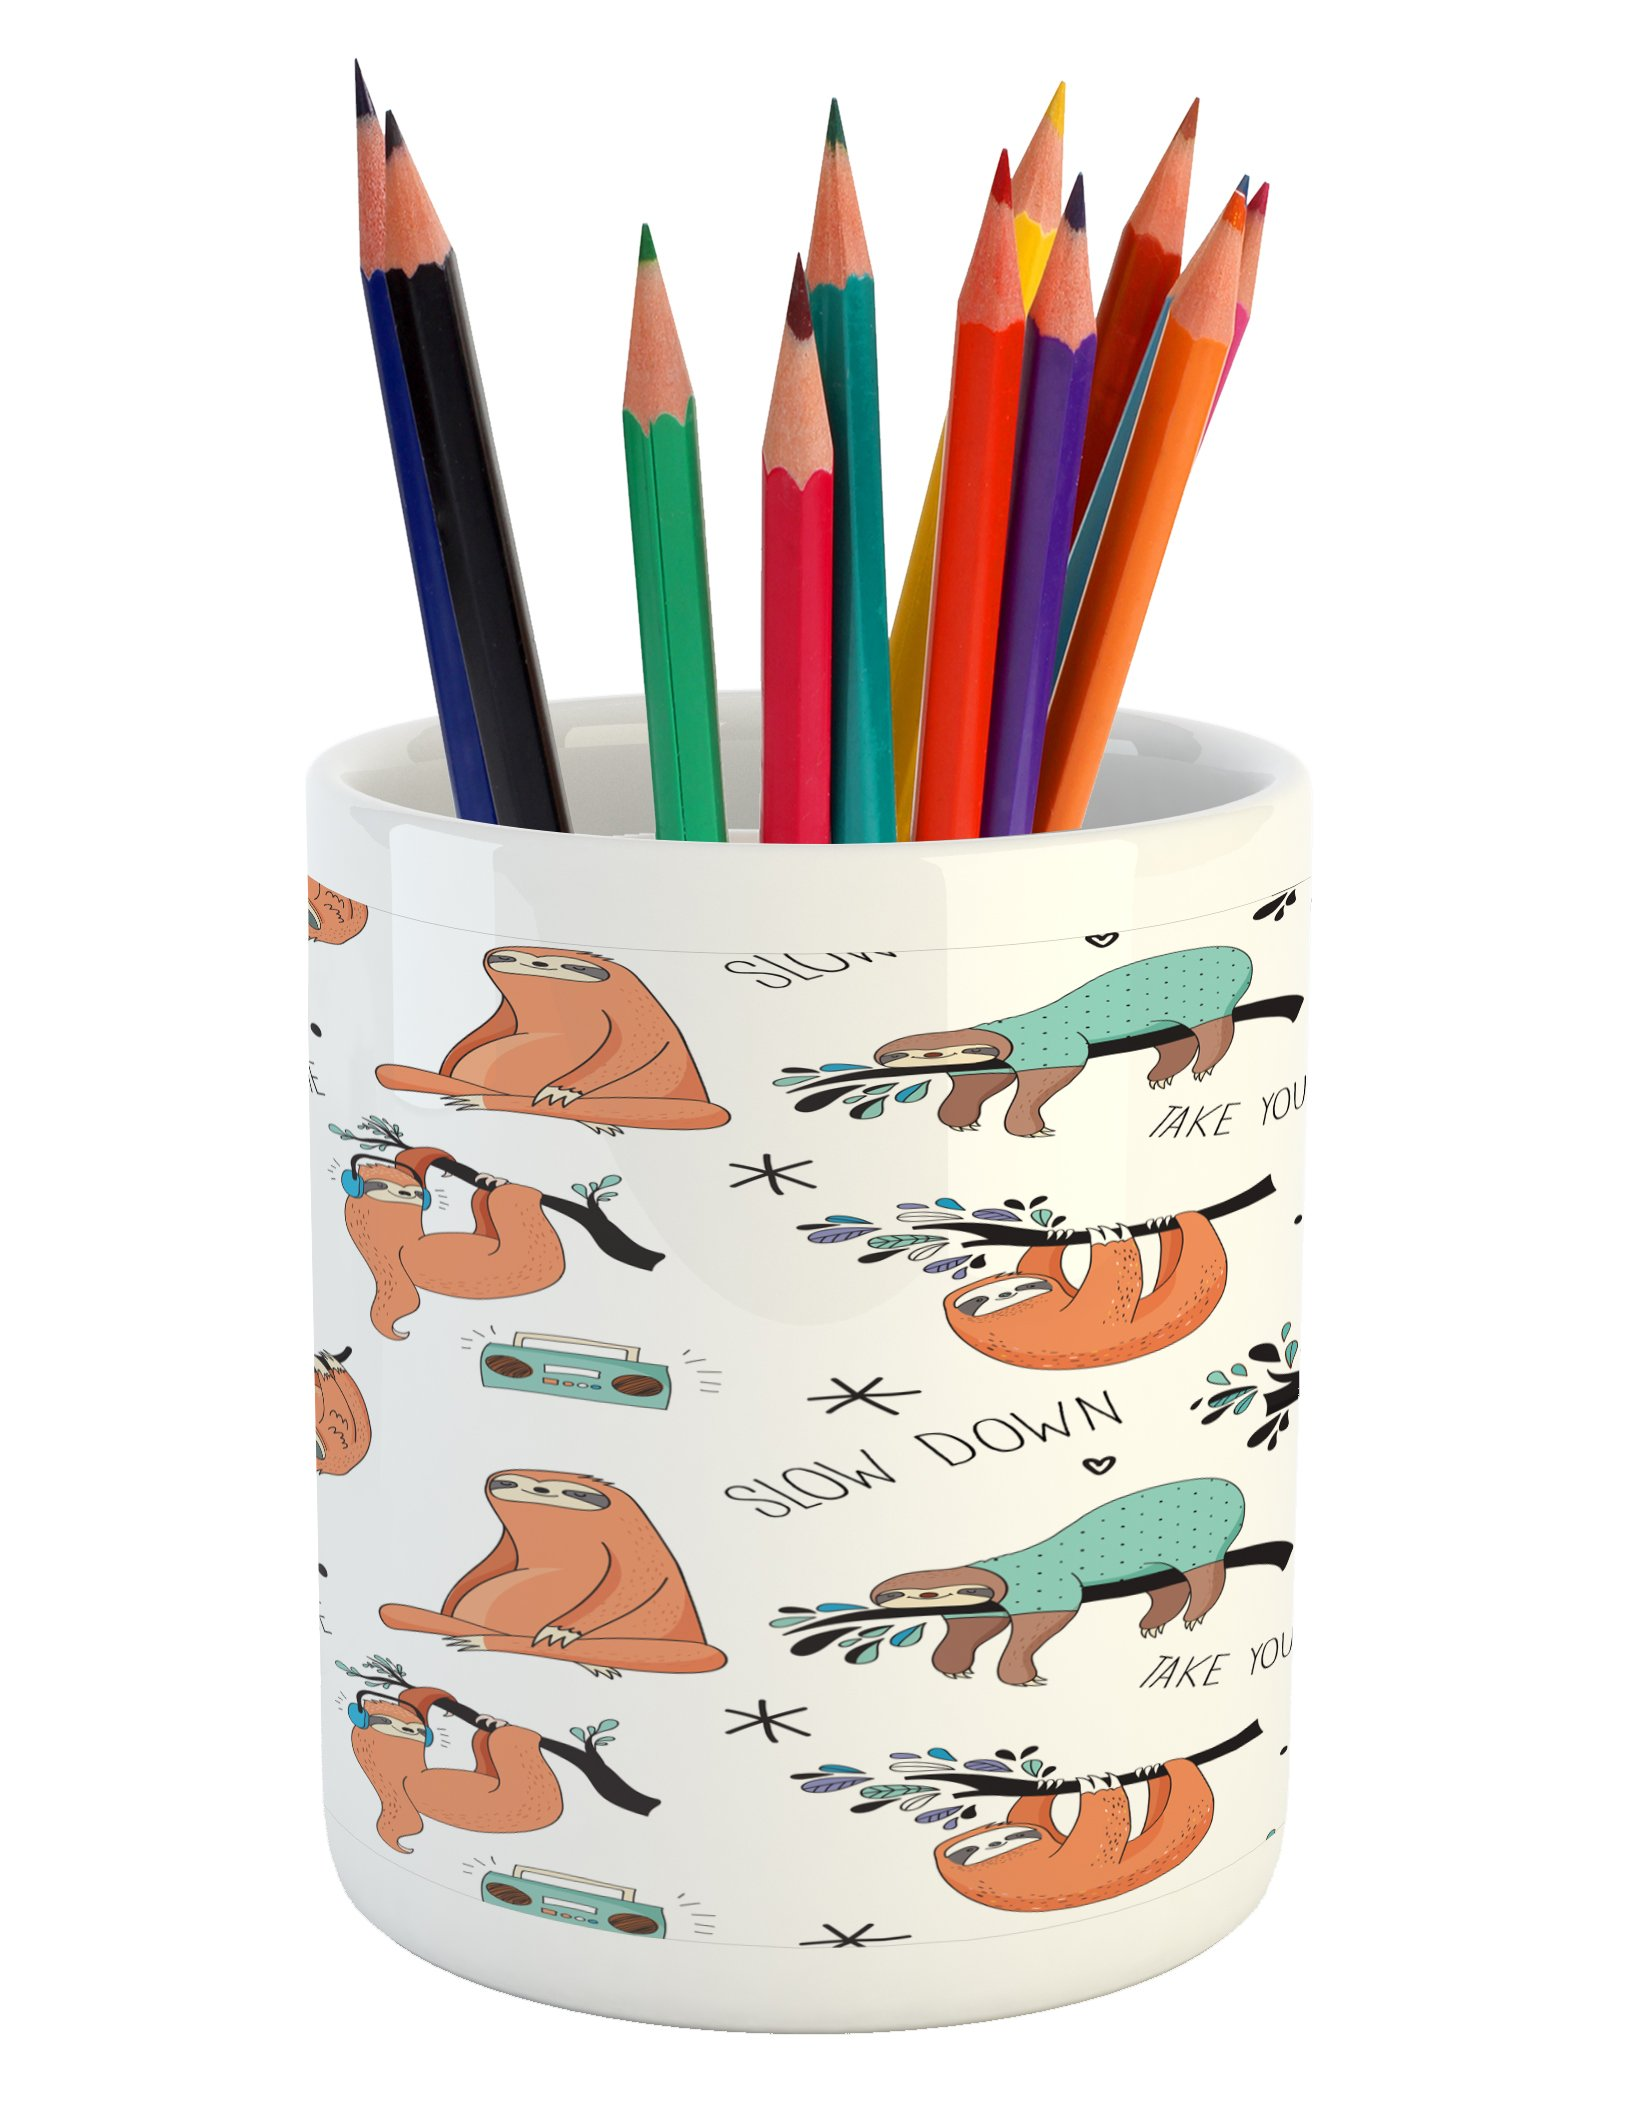 Ambesonne Sloth Pencil Pen Holder, Pattern with Cute Hand Drawn Sloths on Branches Laziness Mood Quotes Fun, Printed Ceramic Pencil Pen Holder for Desk Office Accessory, Orange Pale Blue Black